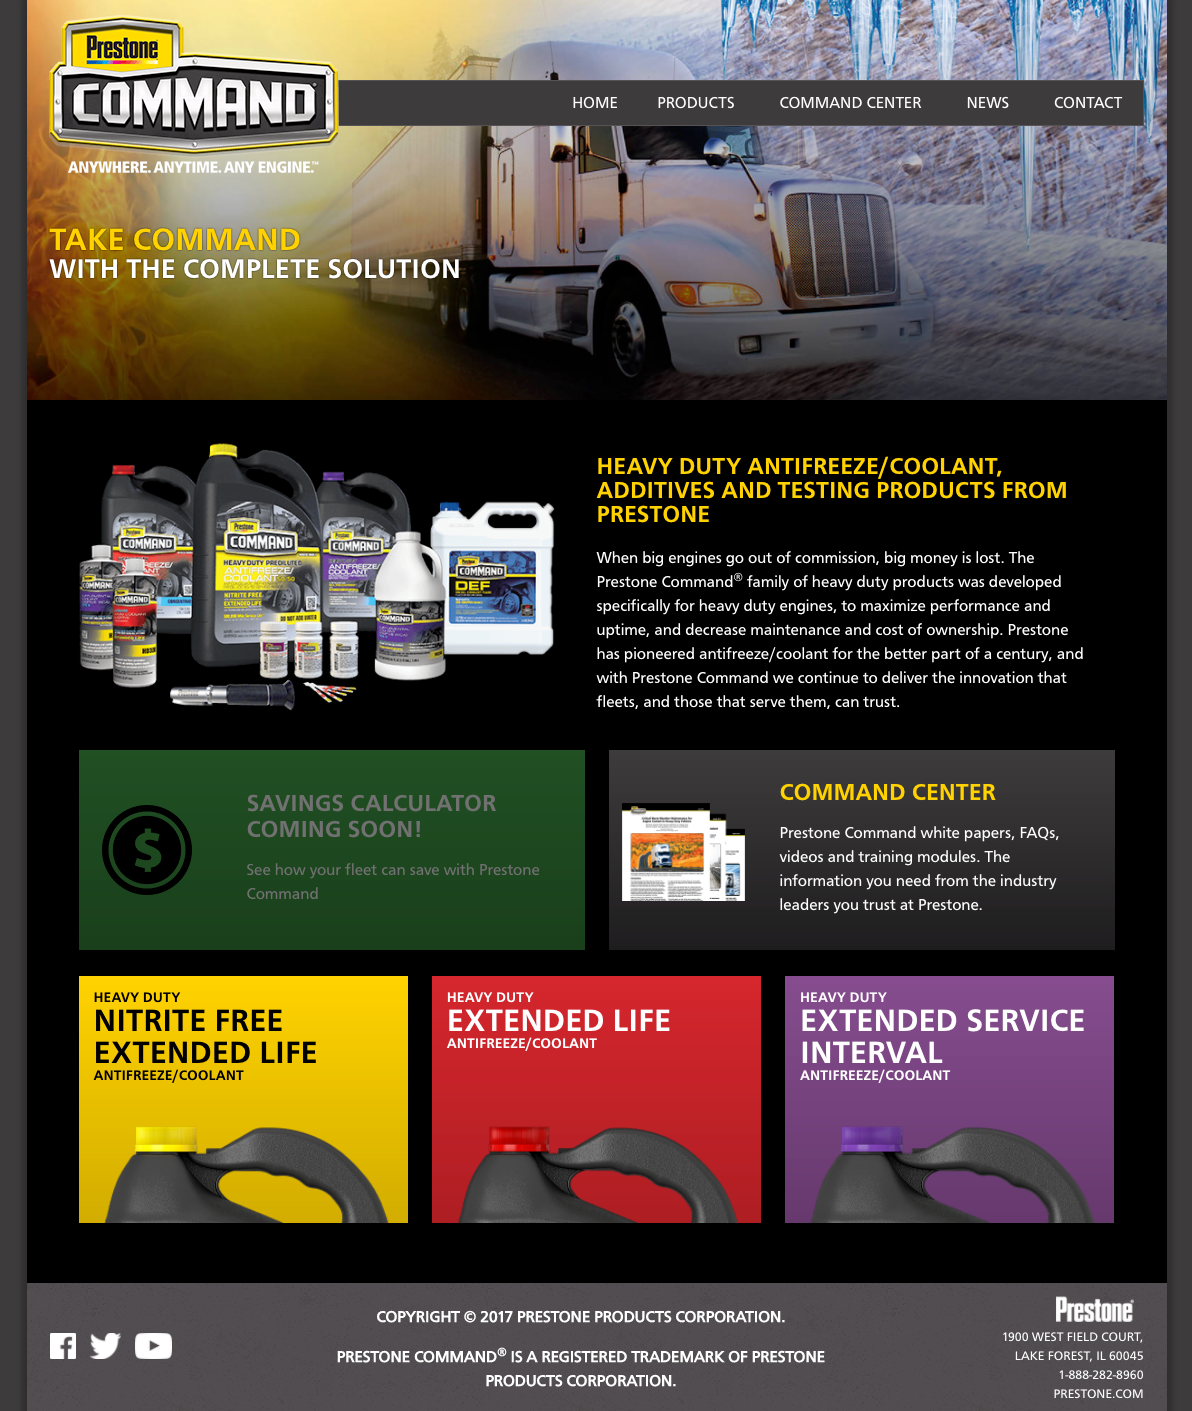 Prestone Command Digital Imagery And Branding On Behance Engine Coolant